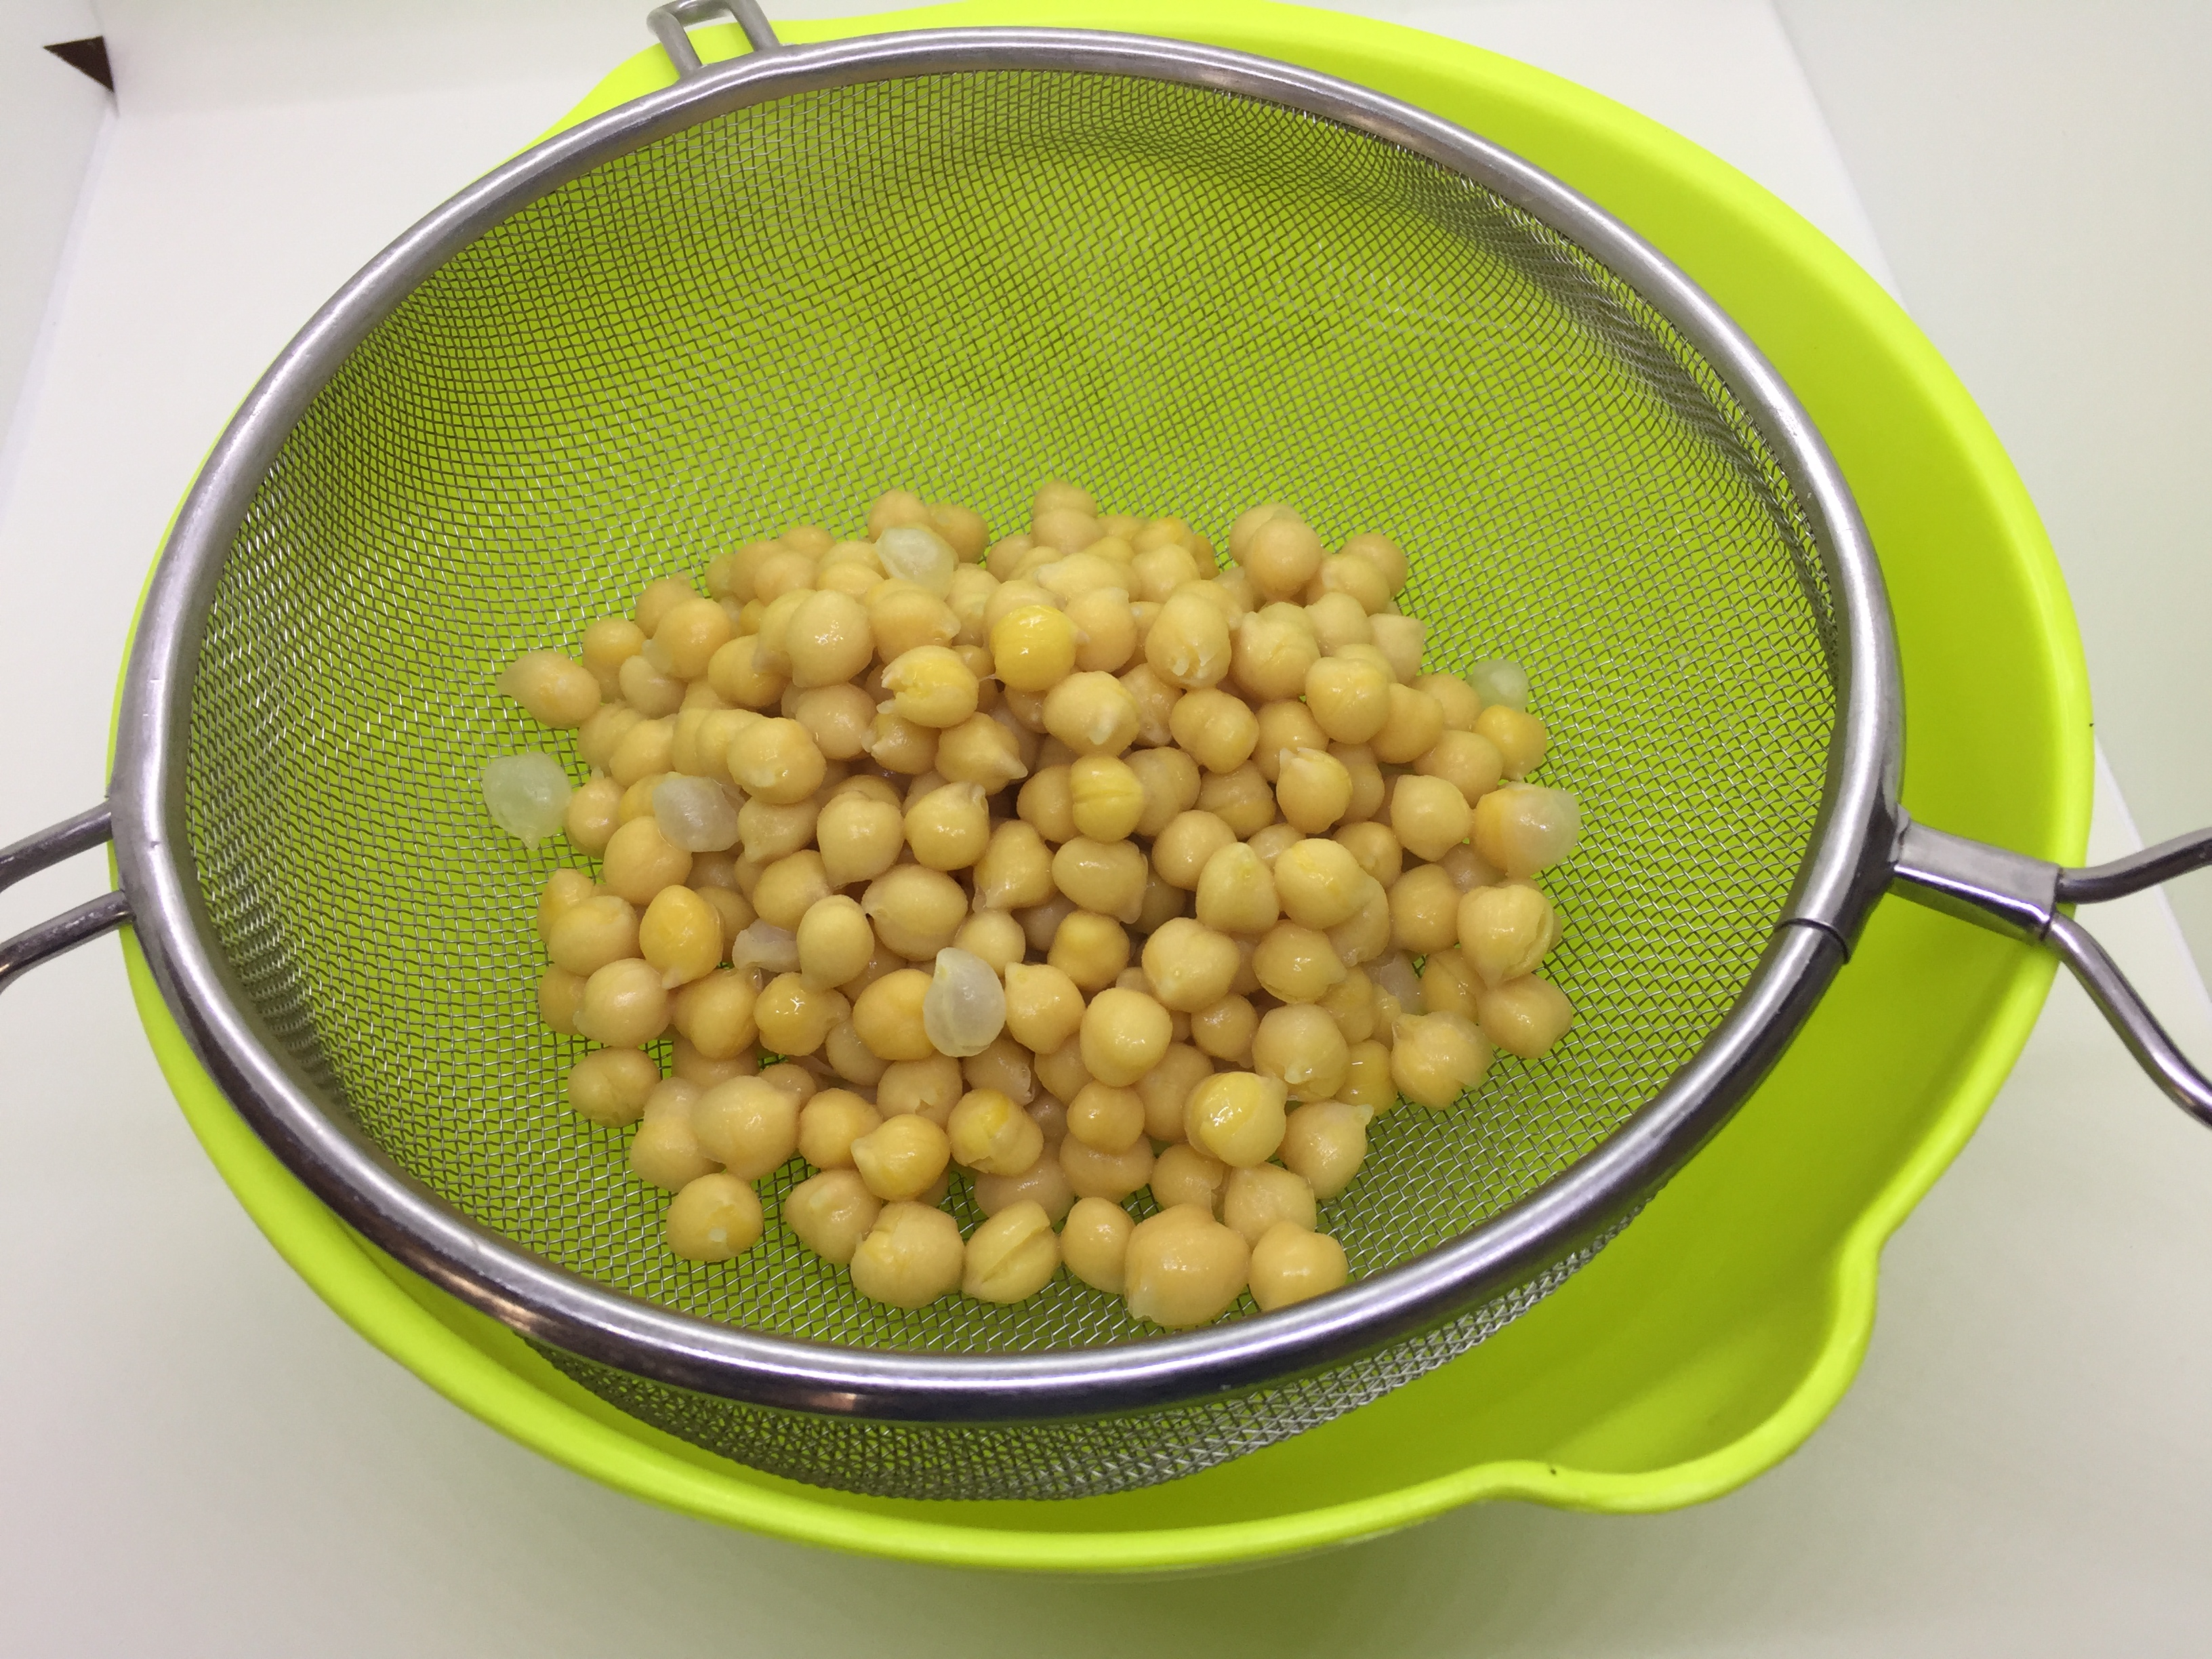 Drain the cooked chickpeas